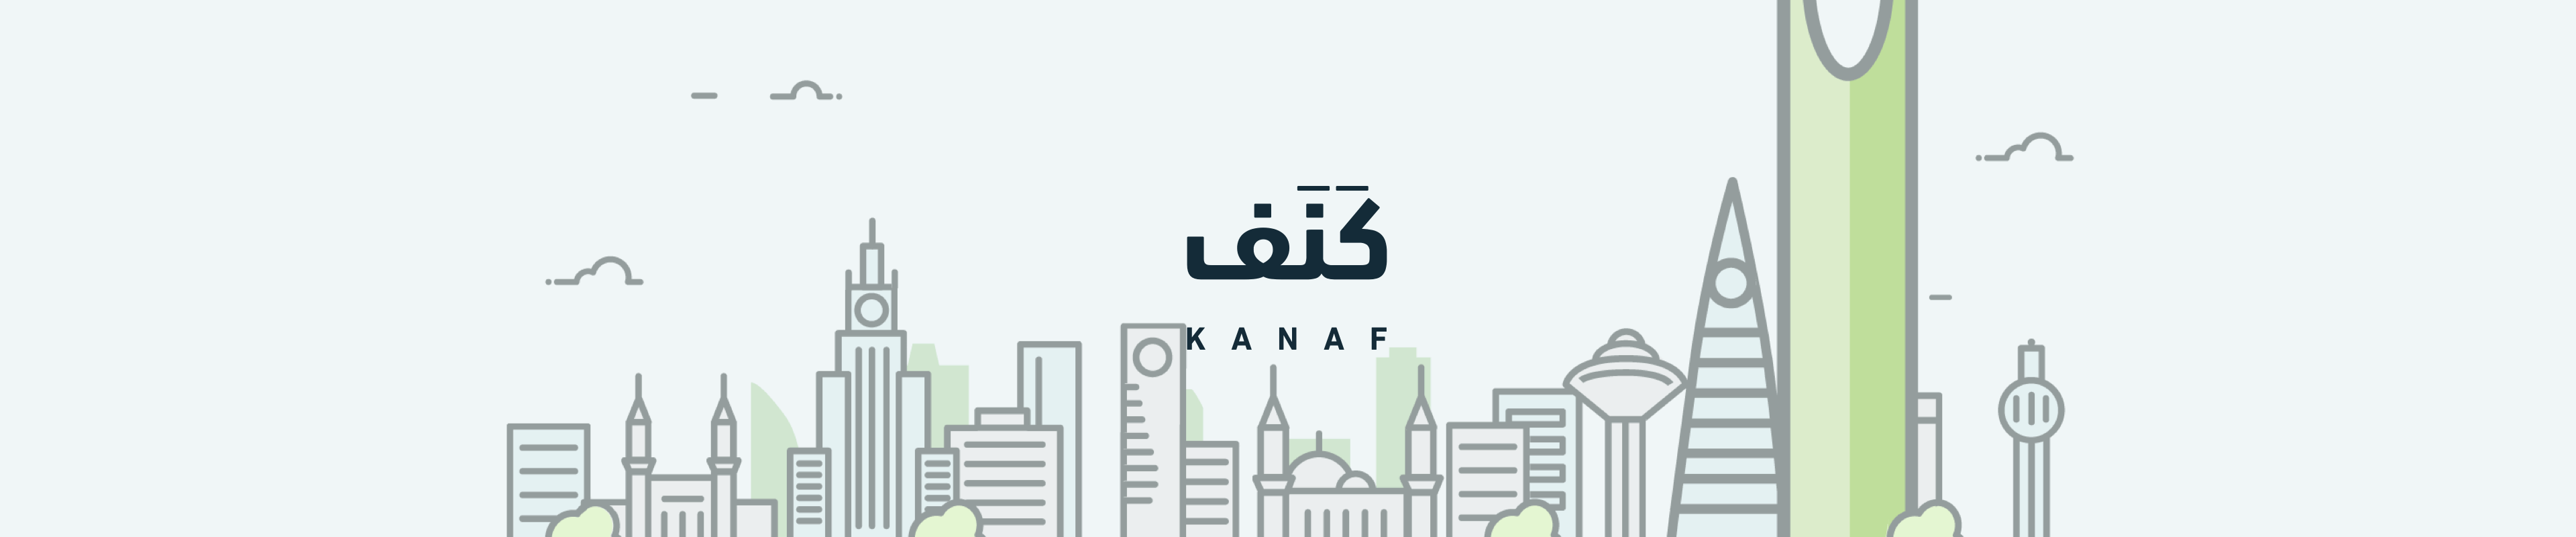 Case study of Kanaf